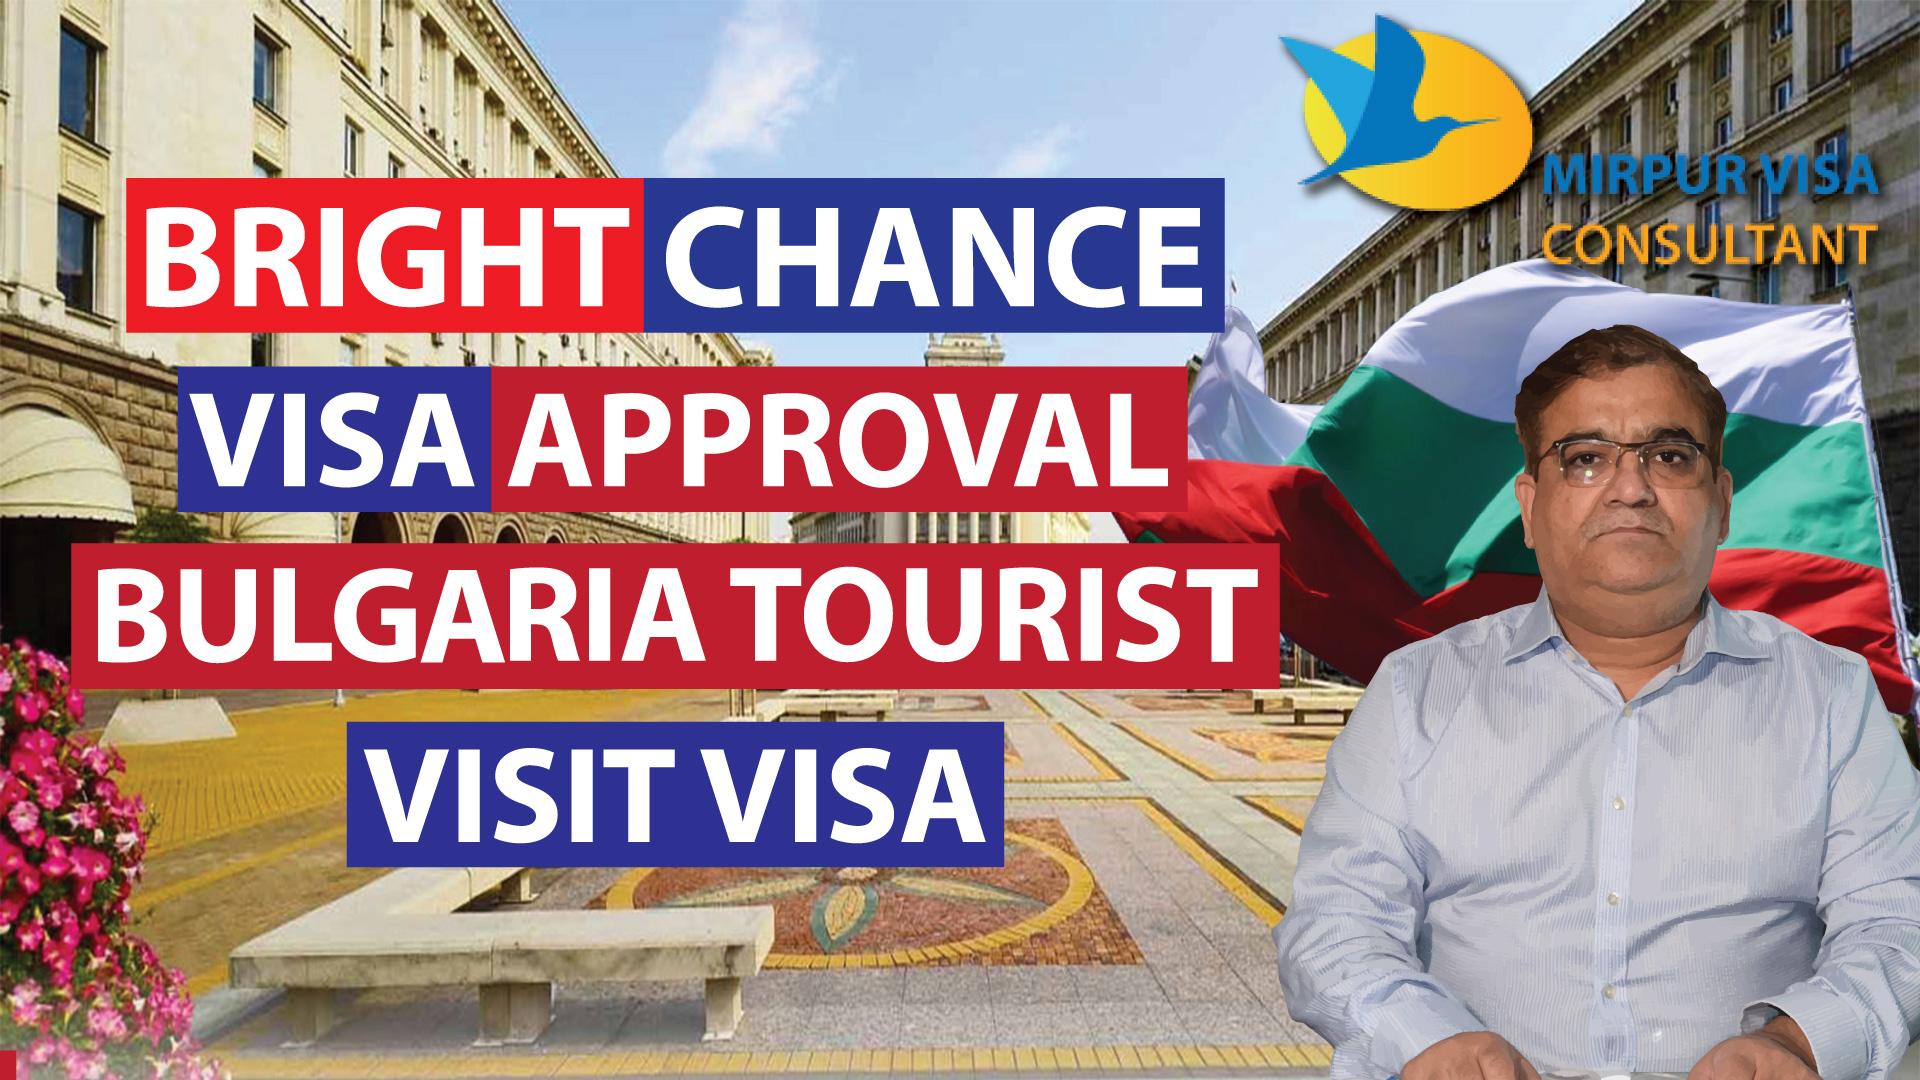 Bulgaria Visit Visa|Bulgaria Tourist Visa| Bright Chances Visa Approval|